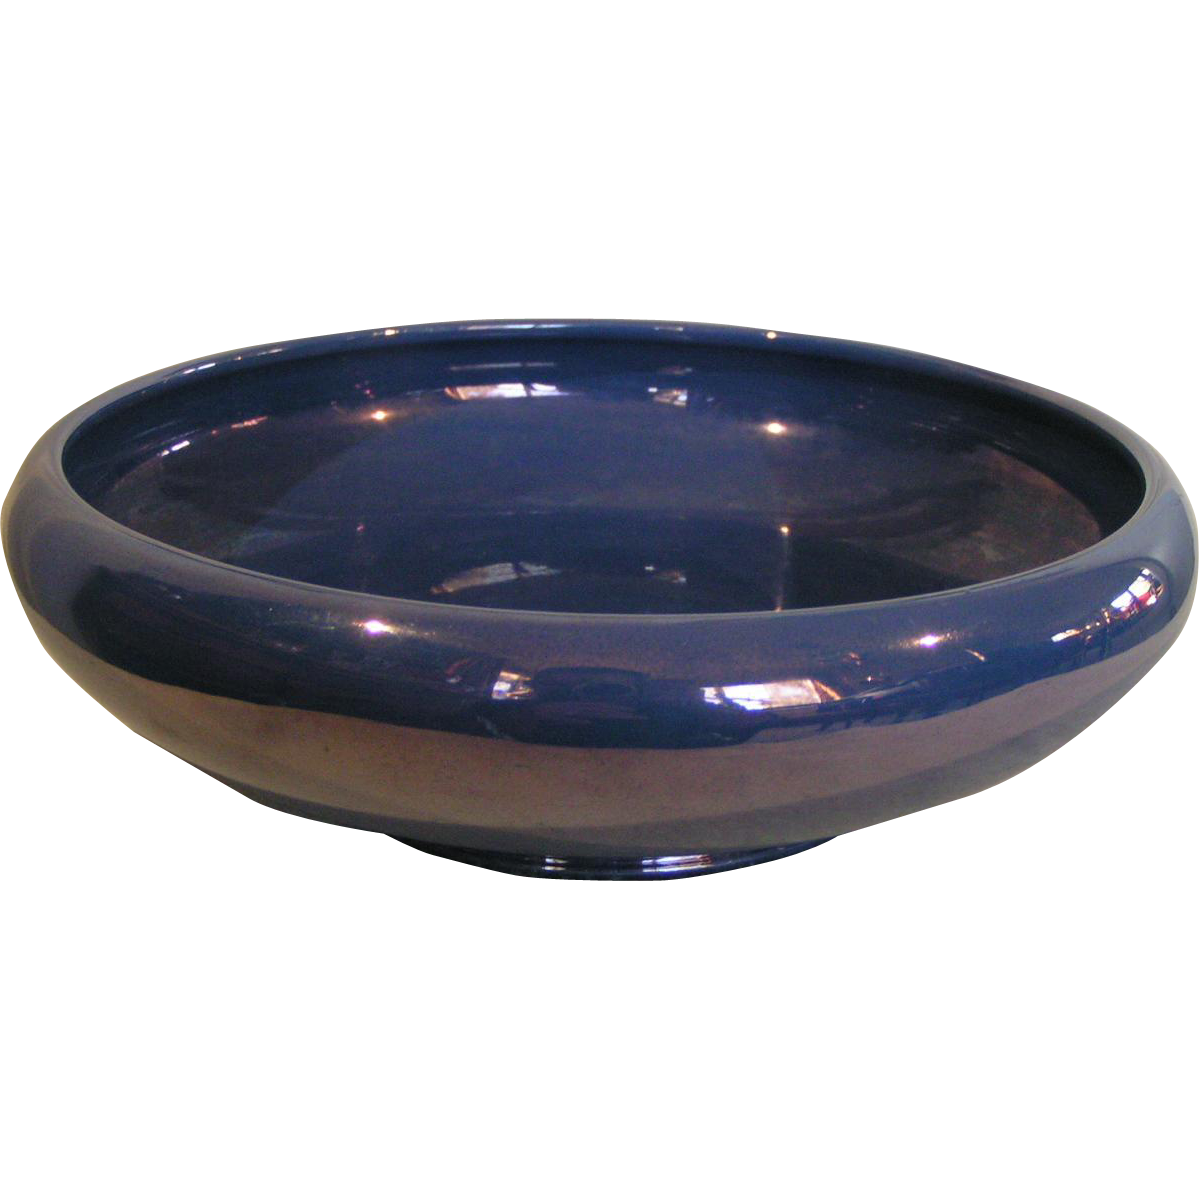 Cowan bowl iridescent blue luster